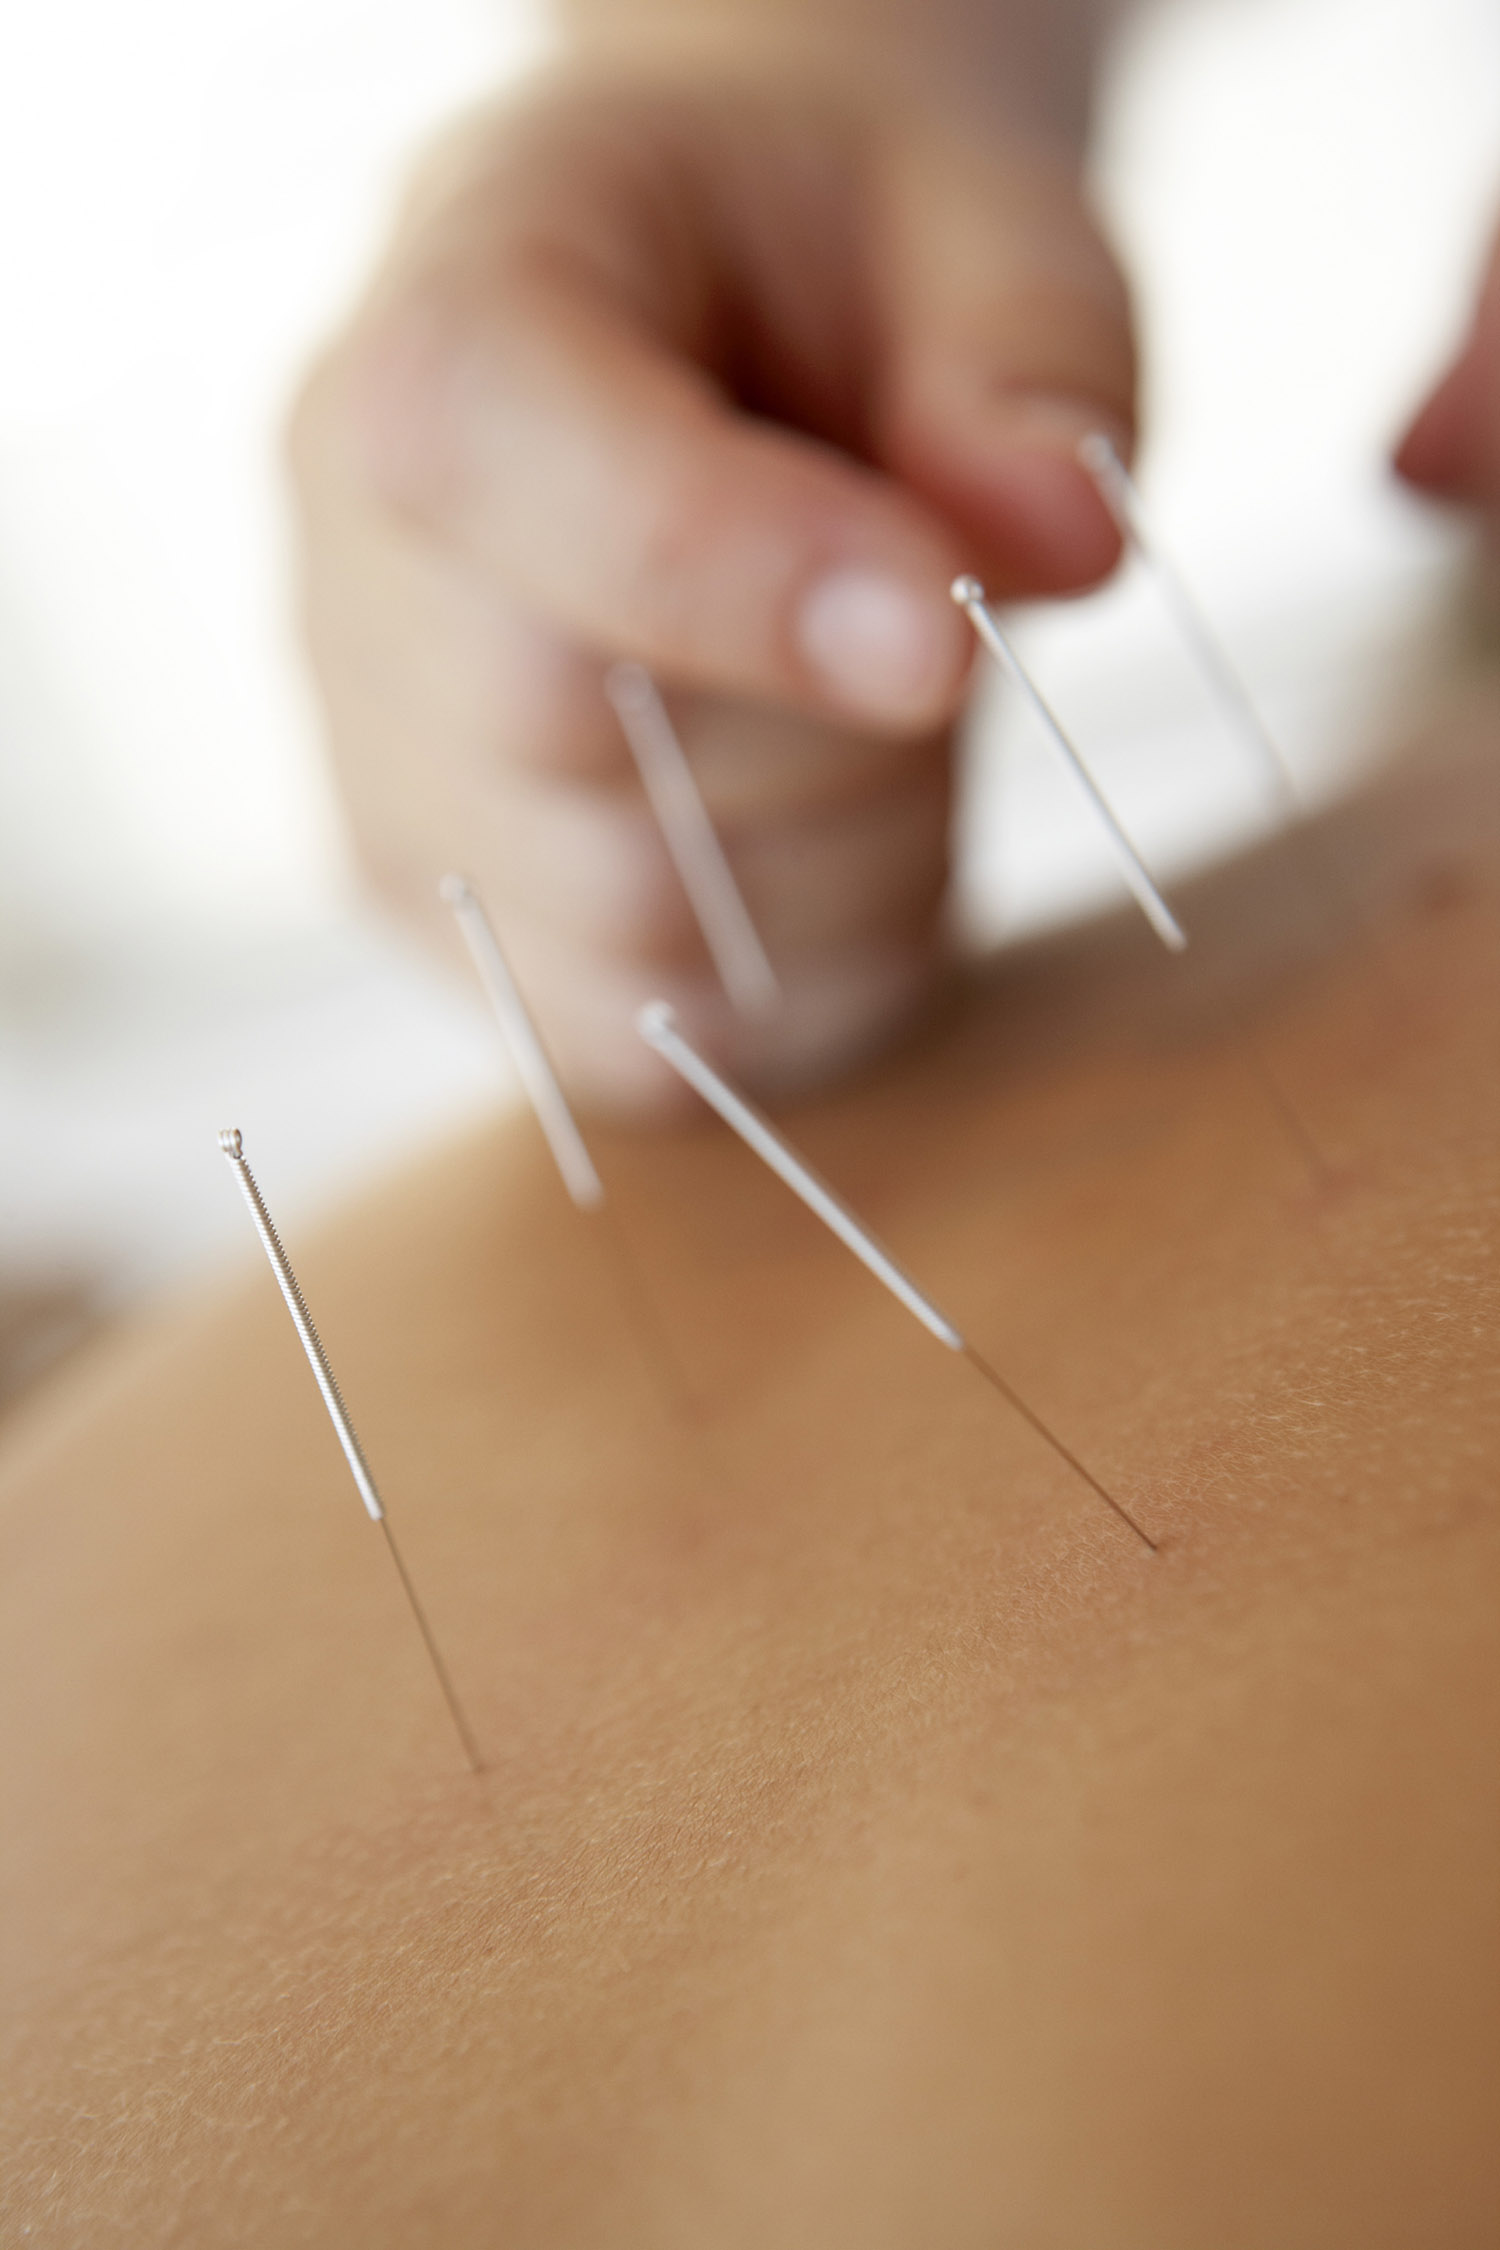 Acupuncture Workshop